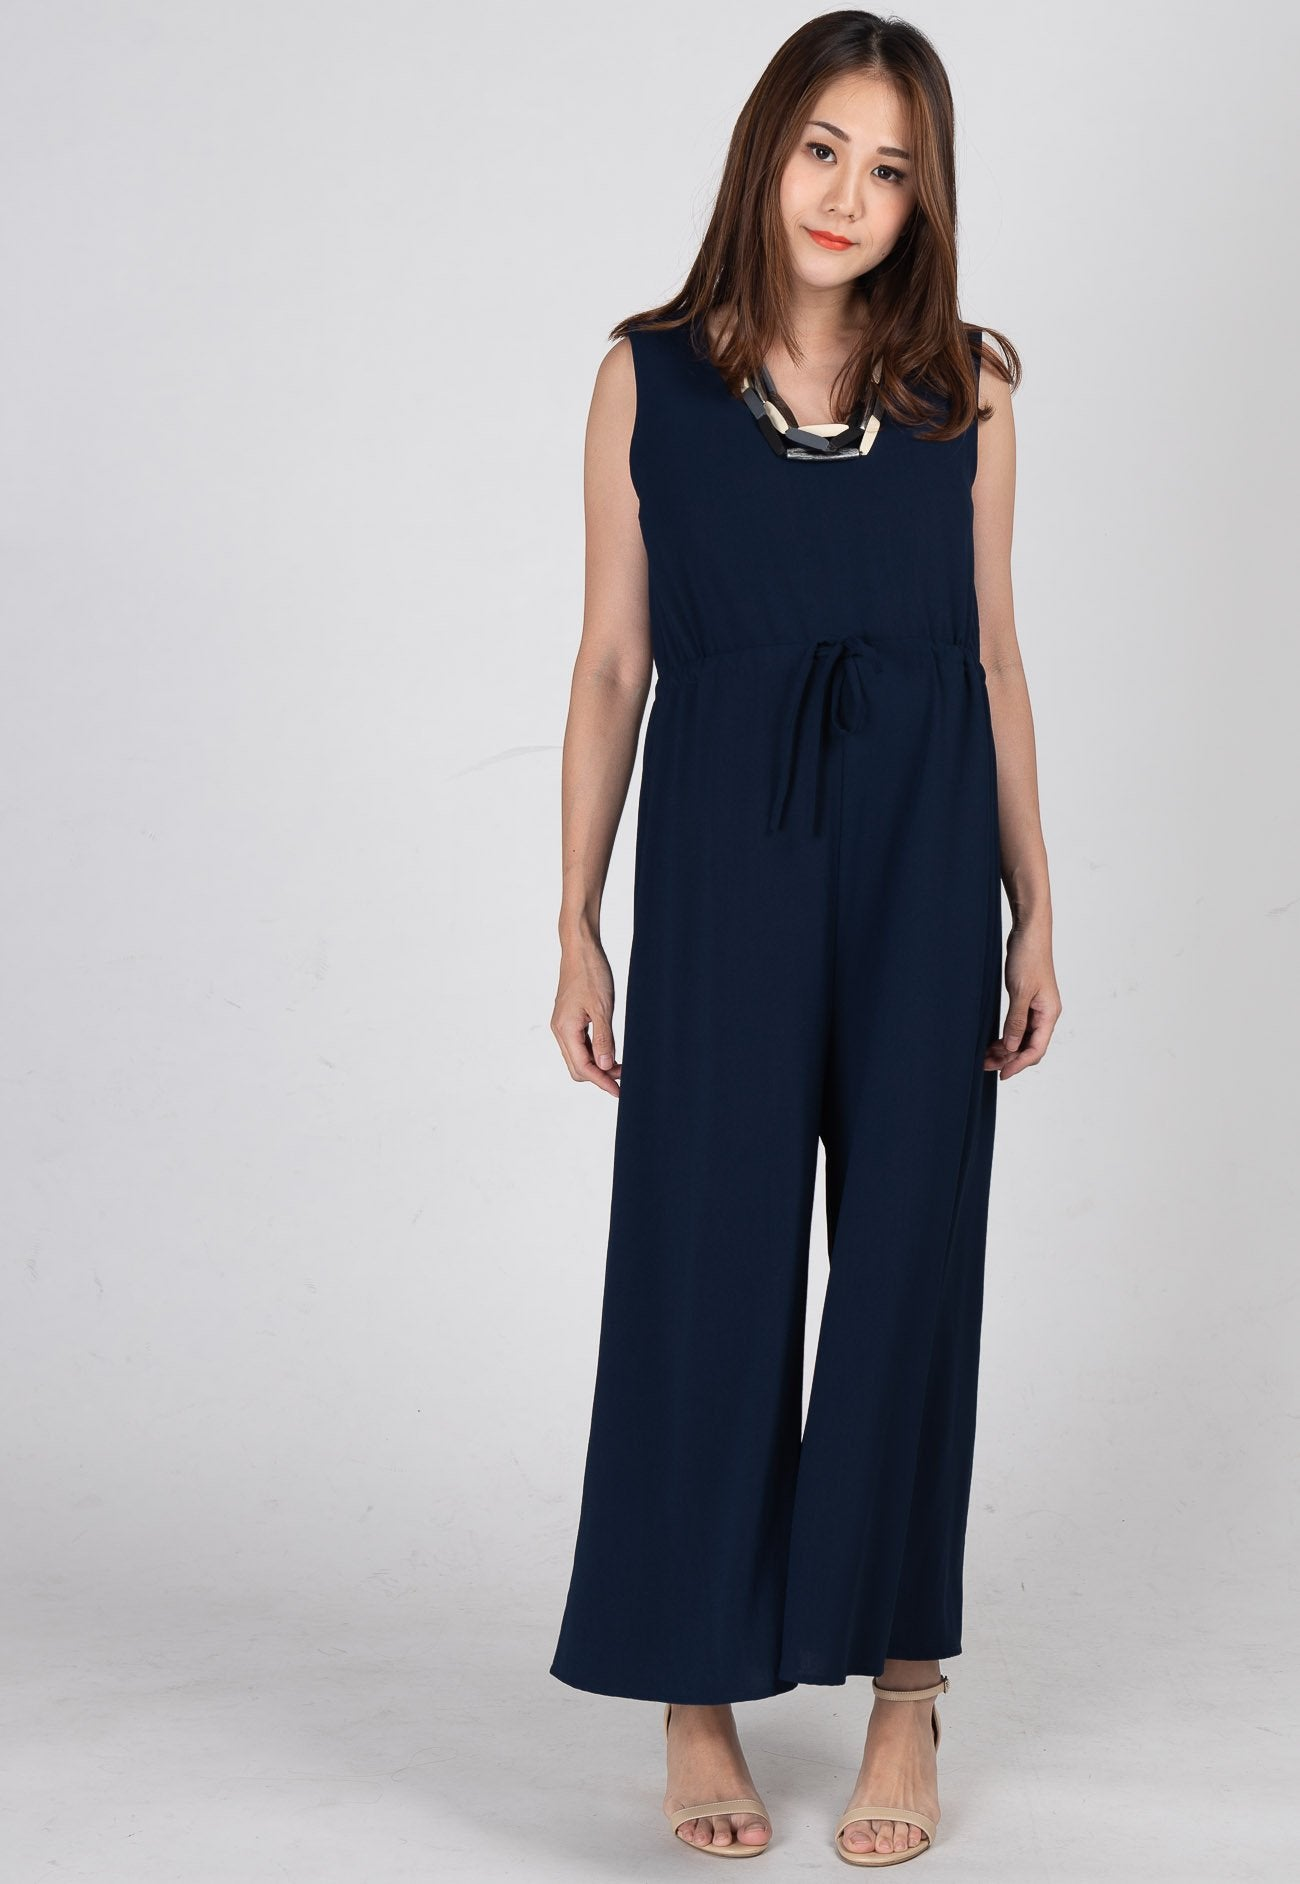 Ariella Nursing Jumpsuit in Dark Blue  by JumpEatCry - Maternity and nursing wear